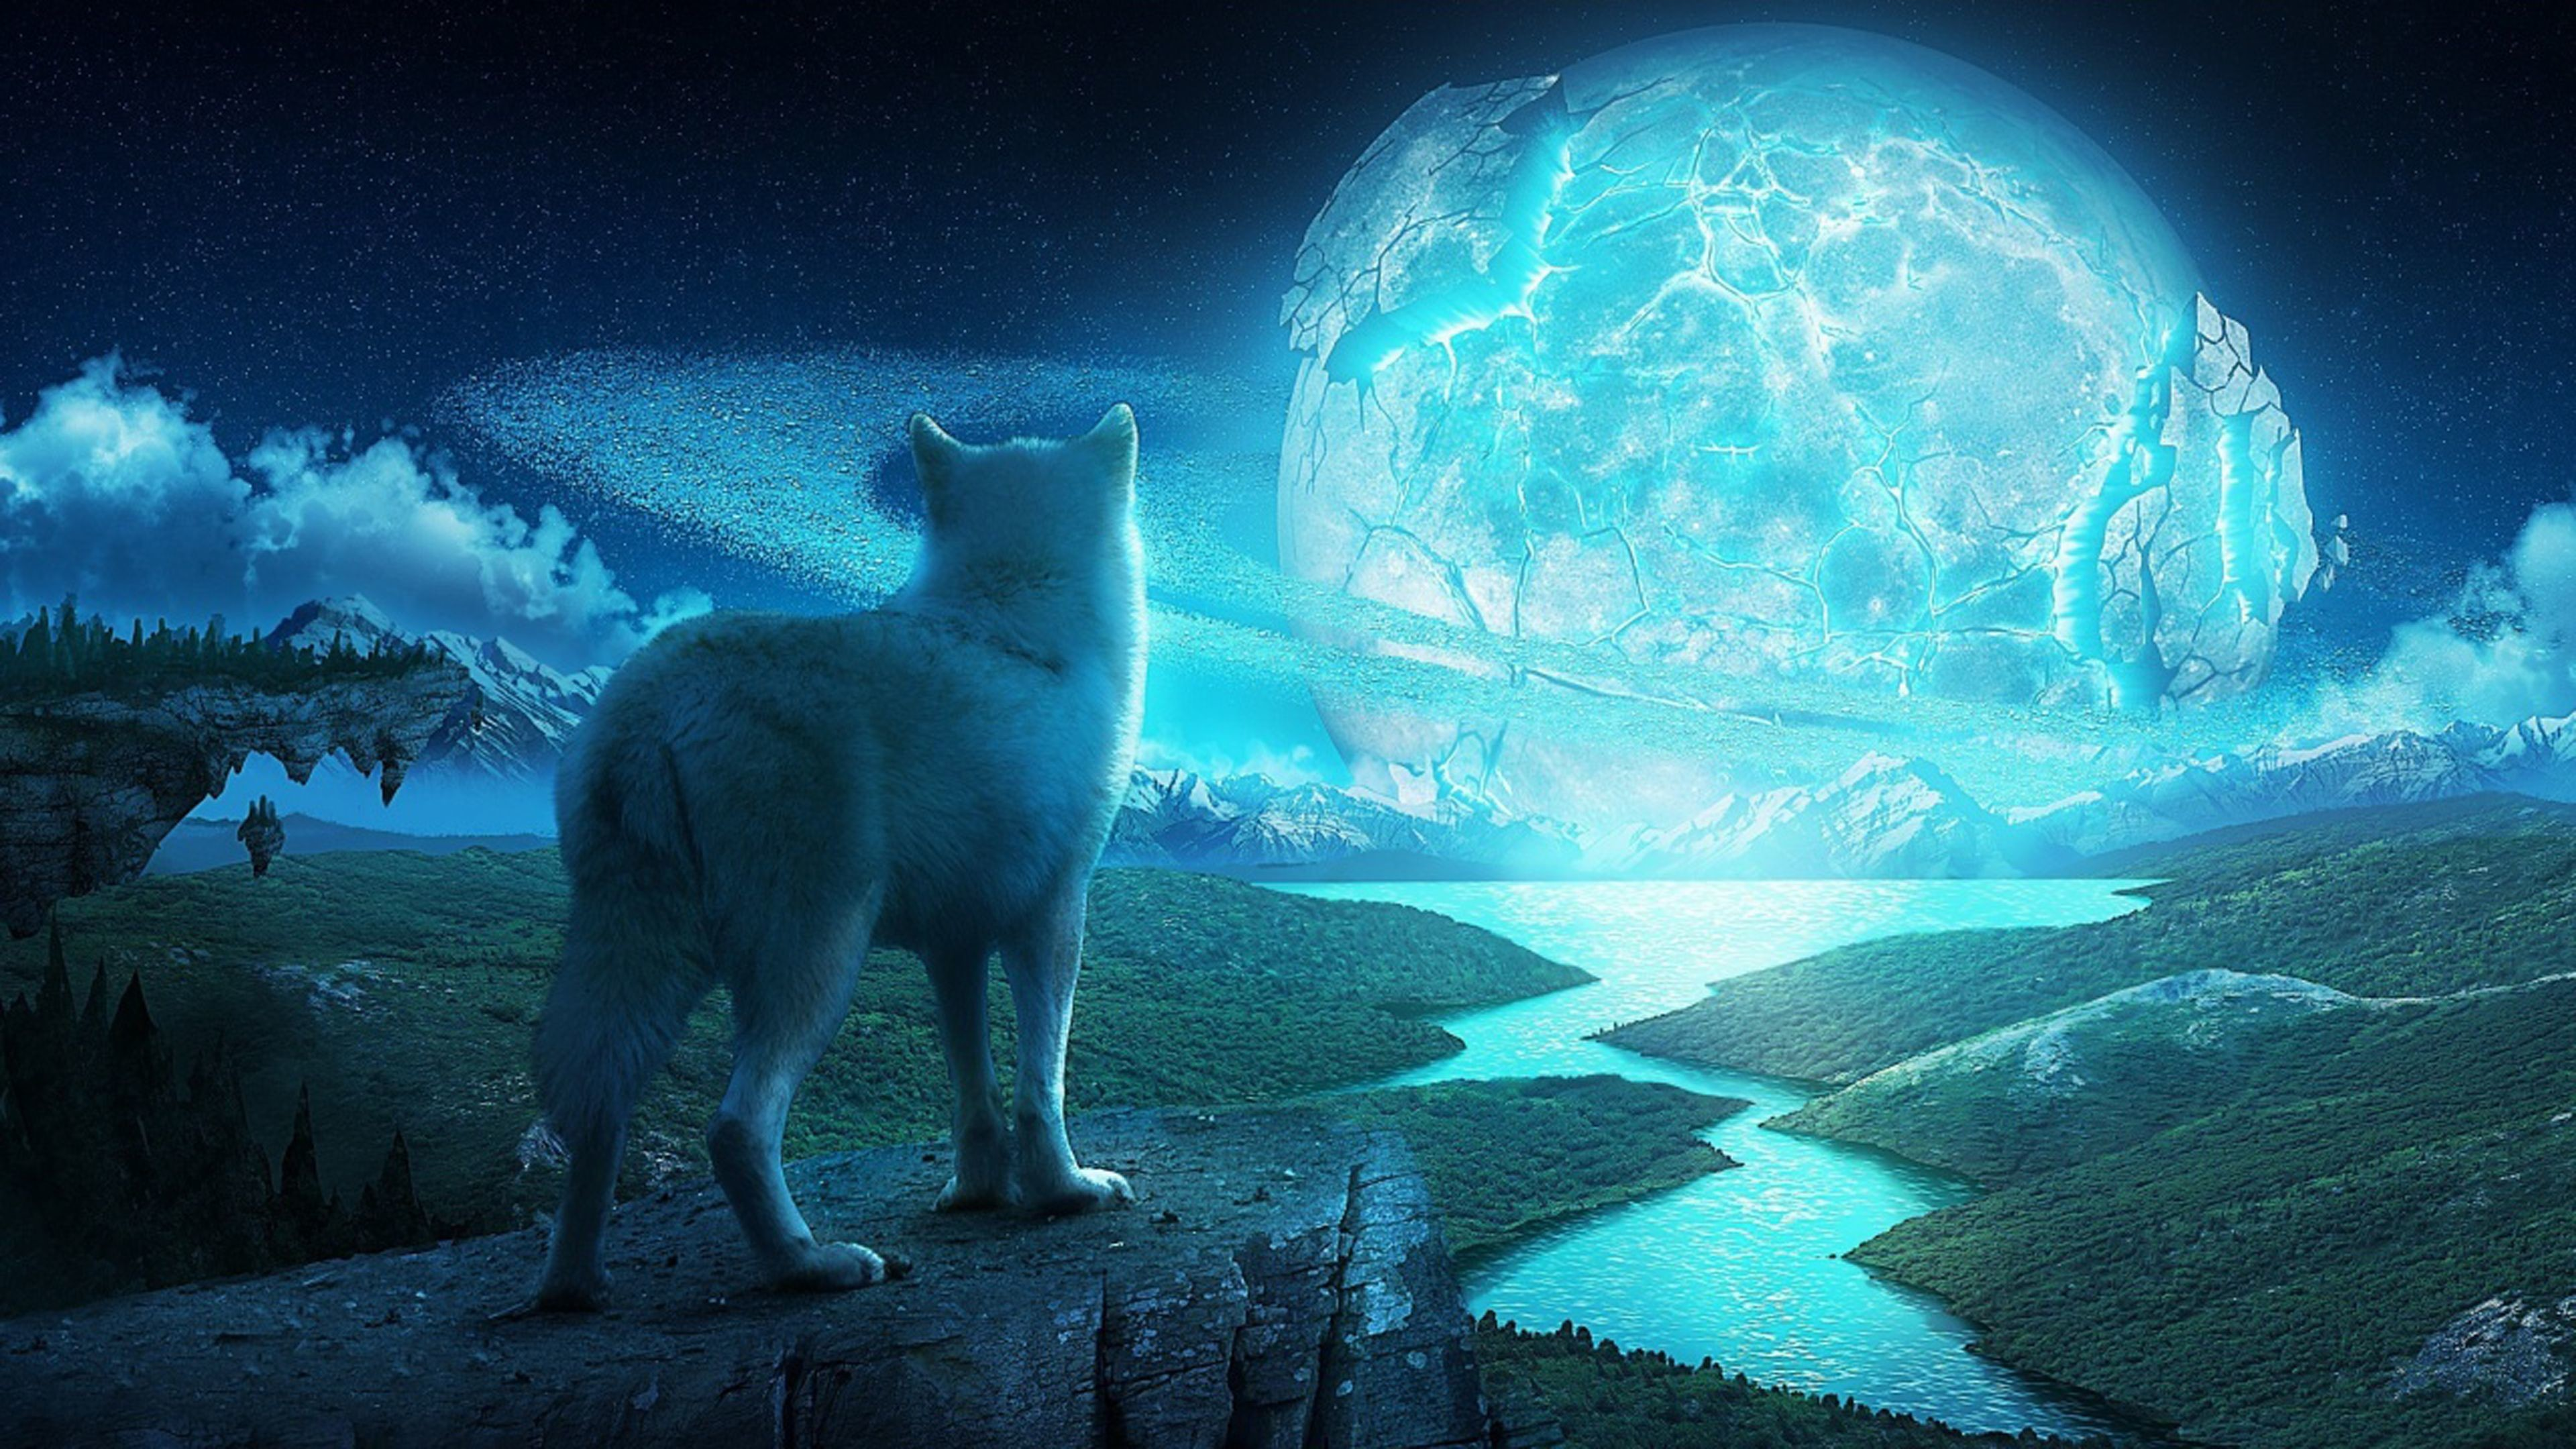 Res: 3840x2160, The mystical wolf fantasy wallpaper background picture #wolf #animal  #fantasy